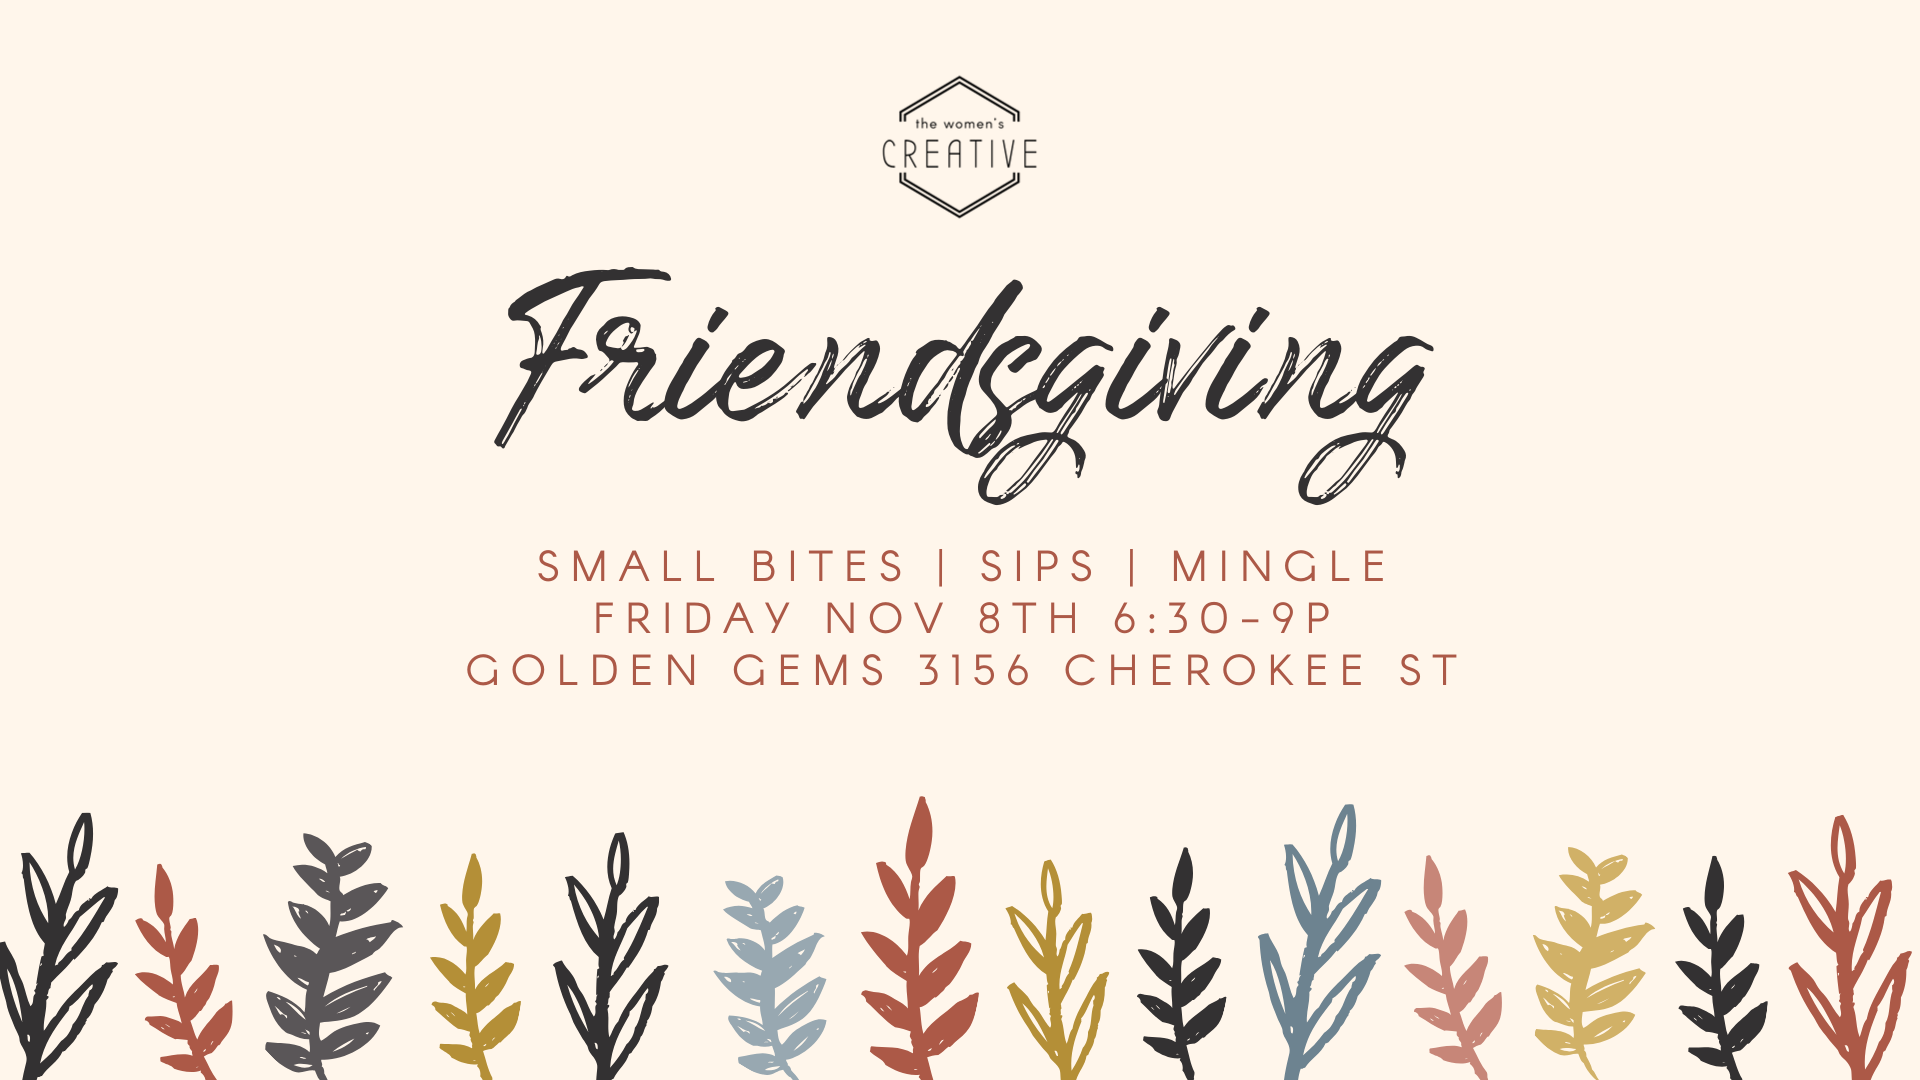 Friendsgiving Mingle St Louis The Women's Creative